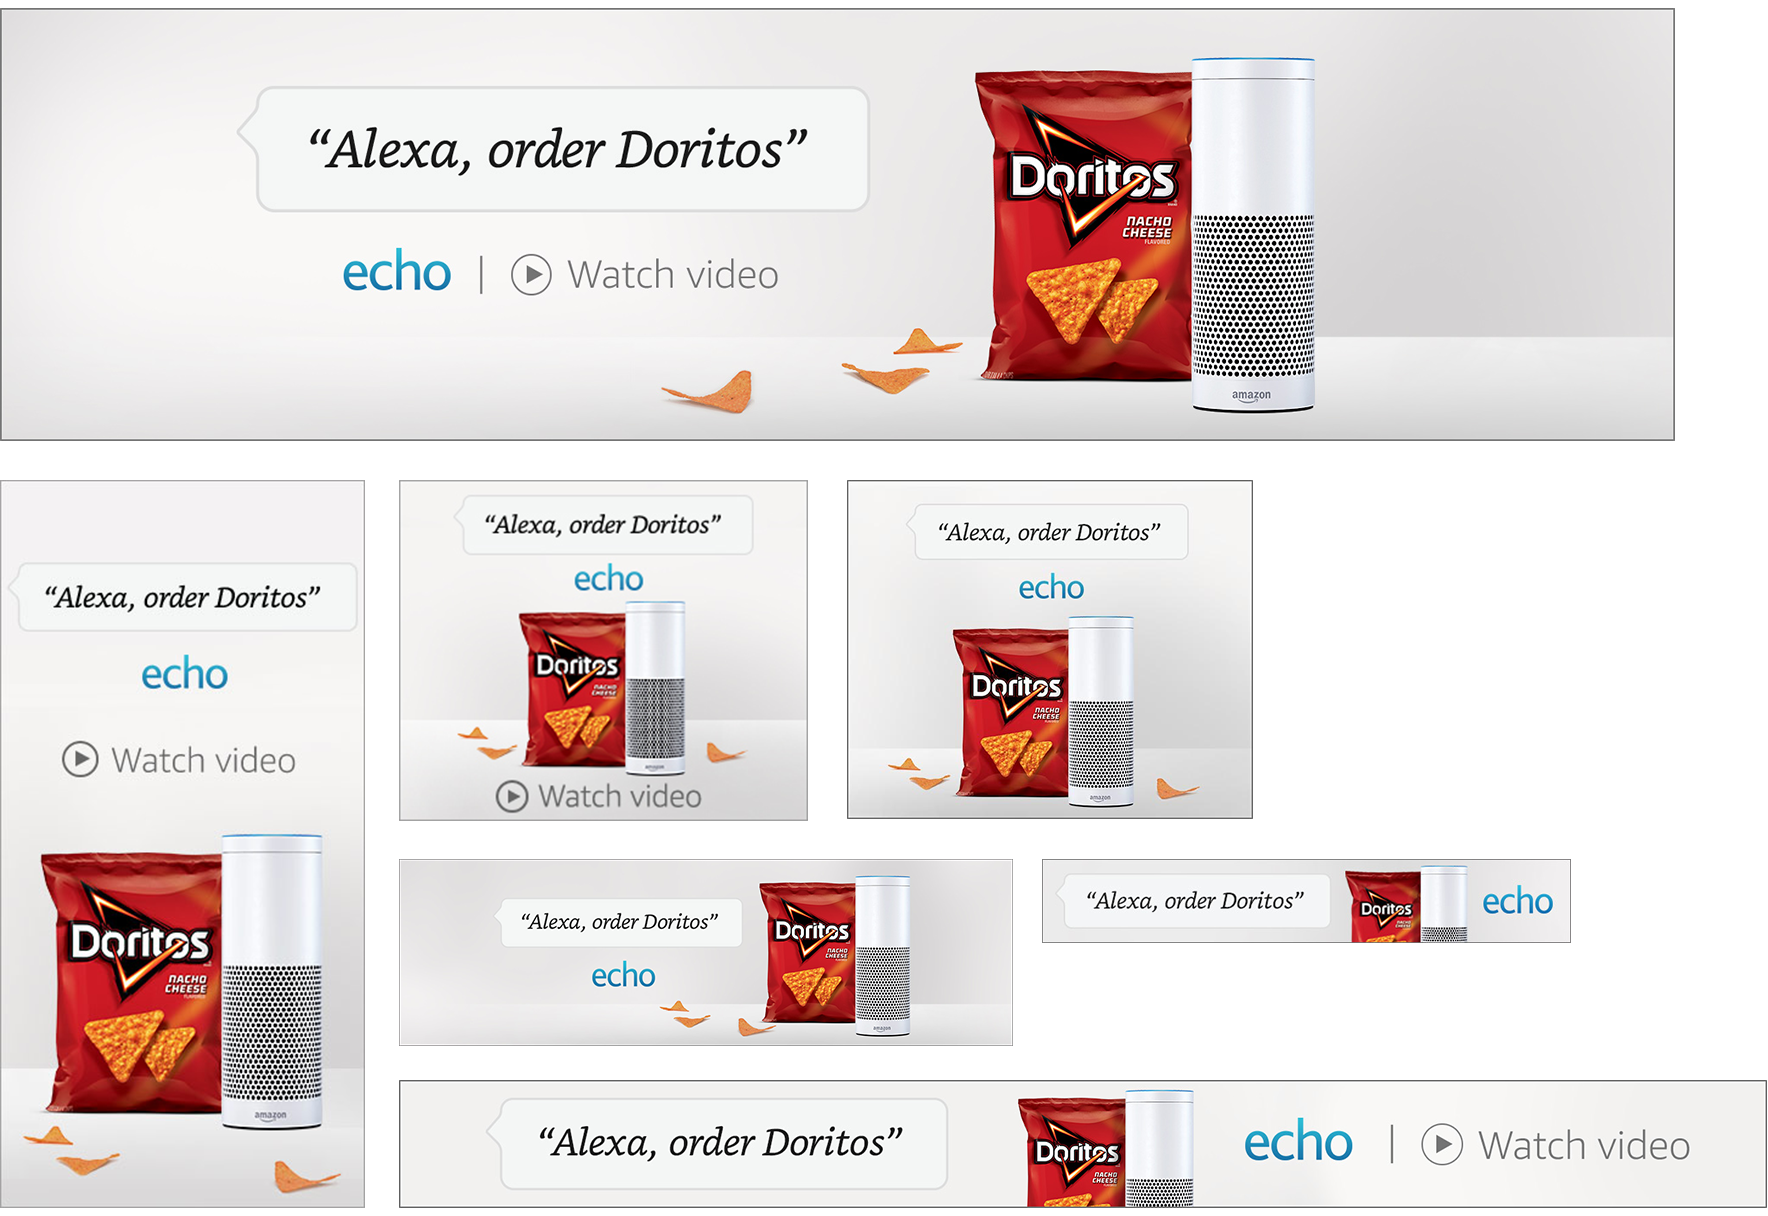 Media banners on Amazon Advertising Platform, Digital, Dimensions Veriable